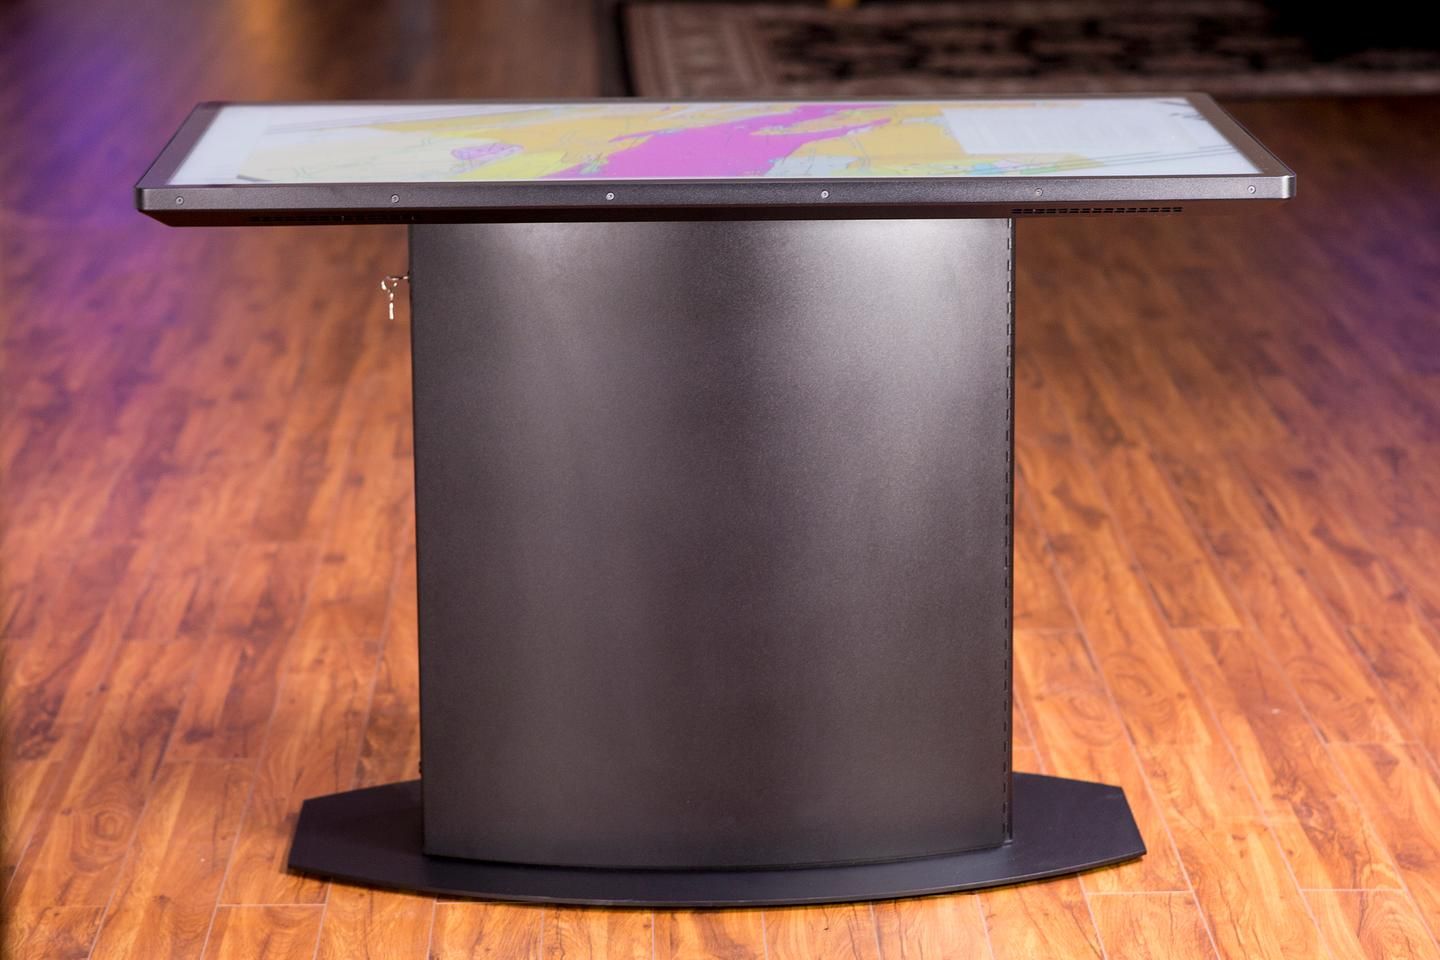 The new 4K UHD Lab Pro multitouch table from Ideum